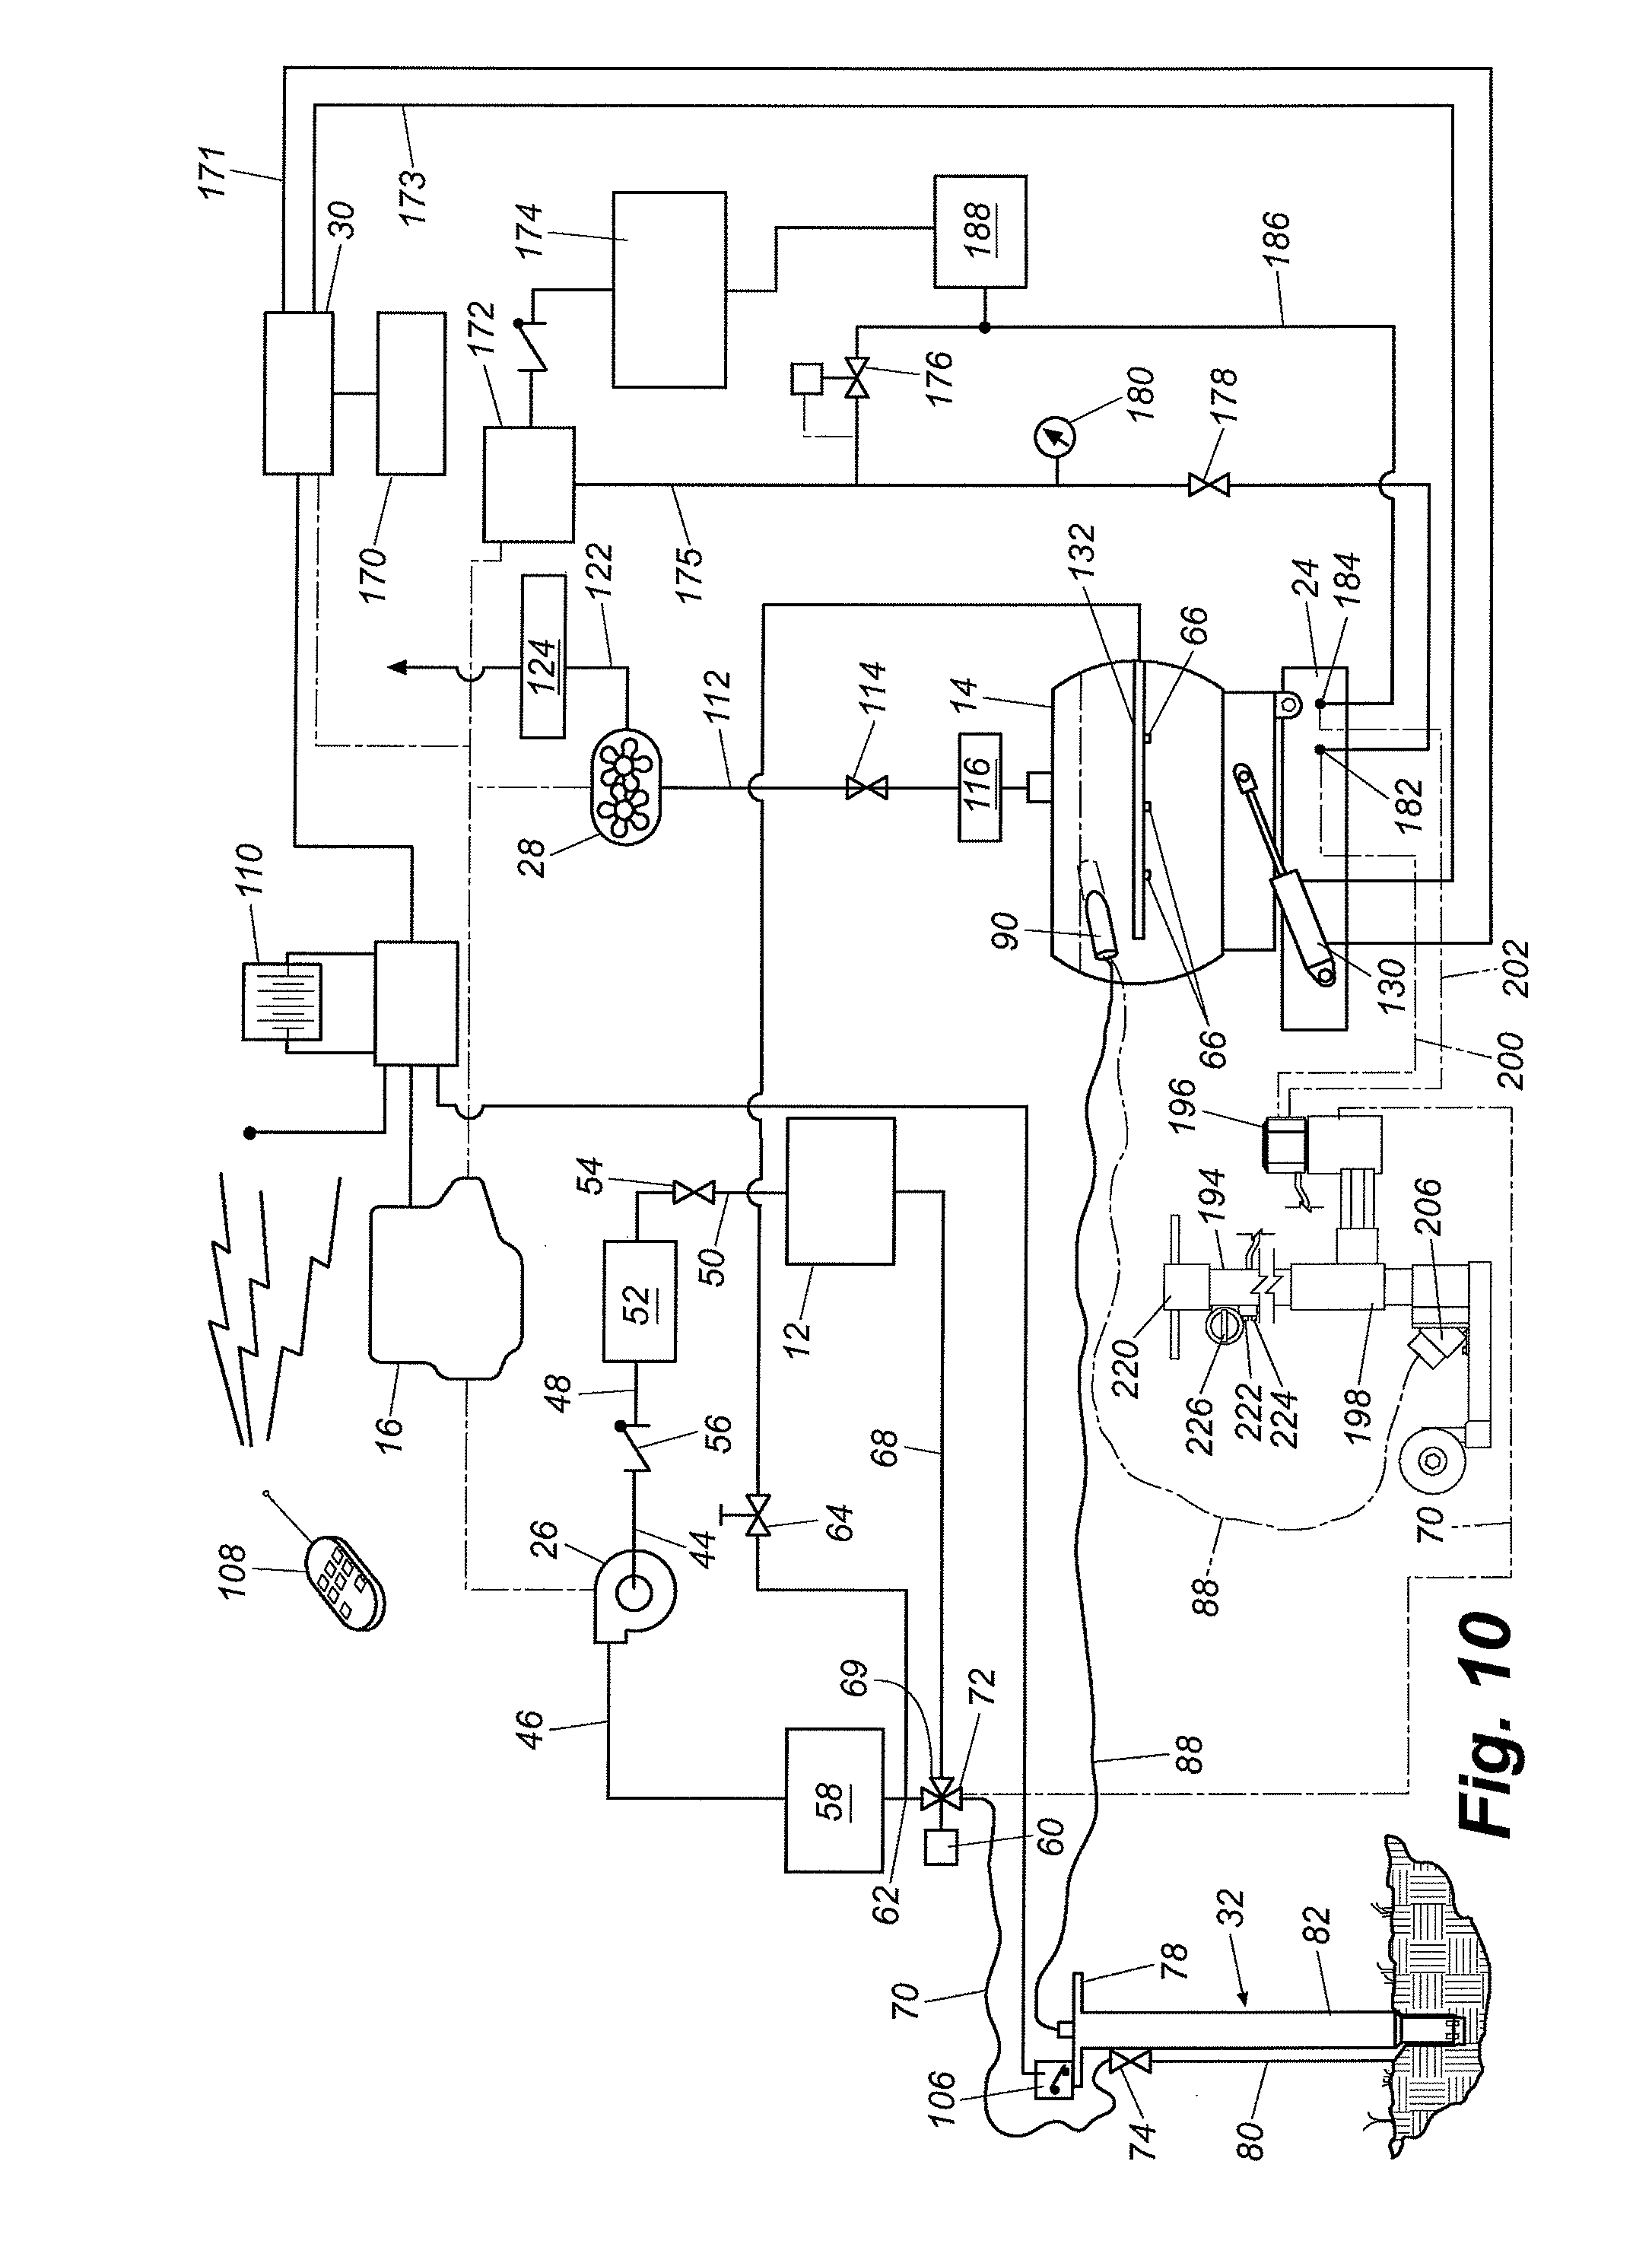 Gehl Skid Steer Wiring Diagram 30 Images John Deere 318d Us08336231 20121225 D00009 Patent Us8336231 Digging And Backfill Apparatus Google Patents